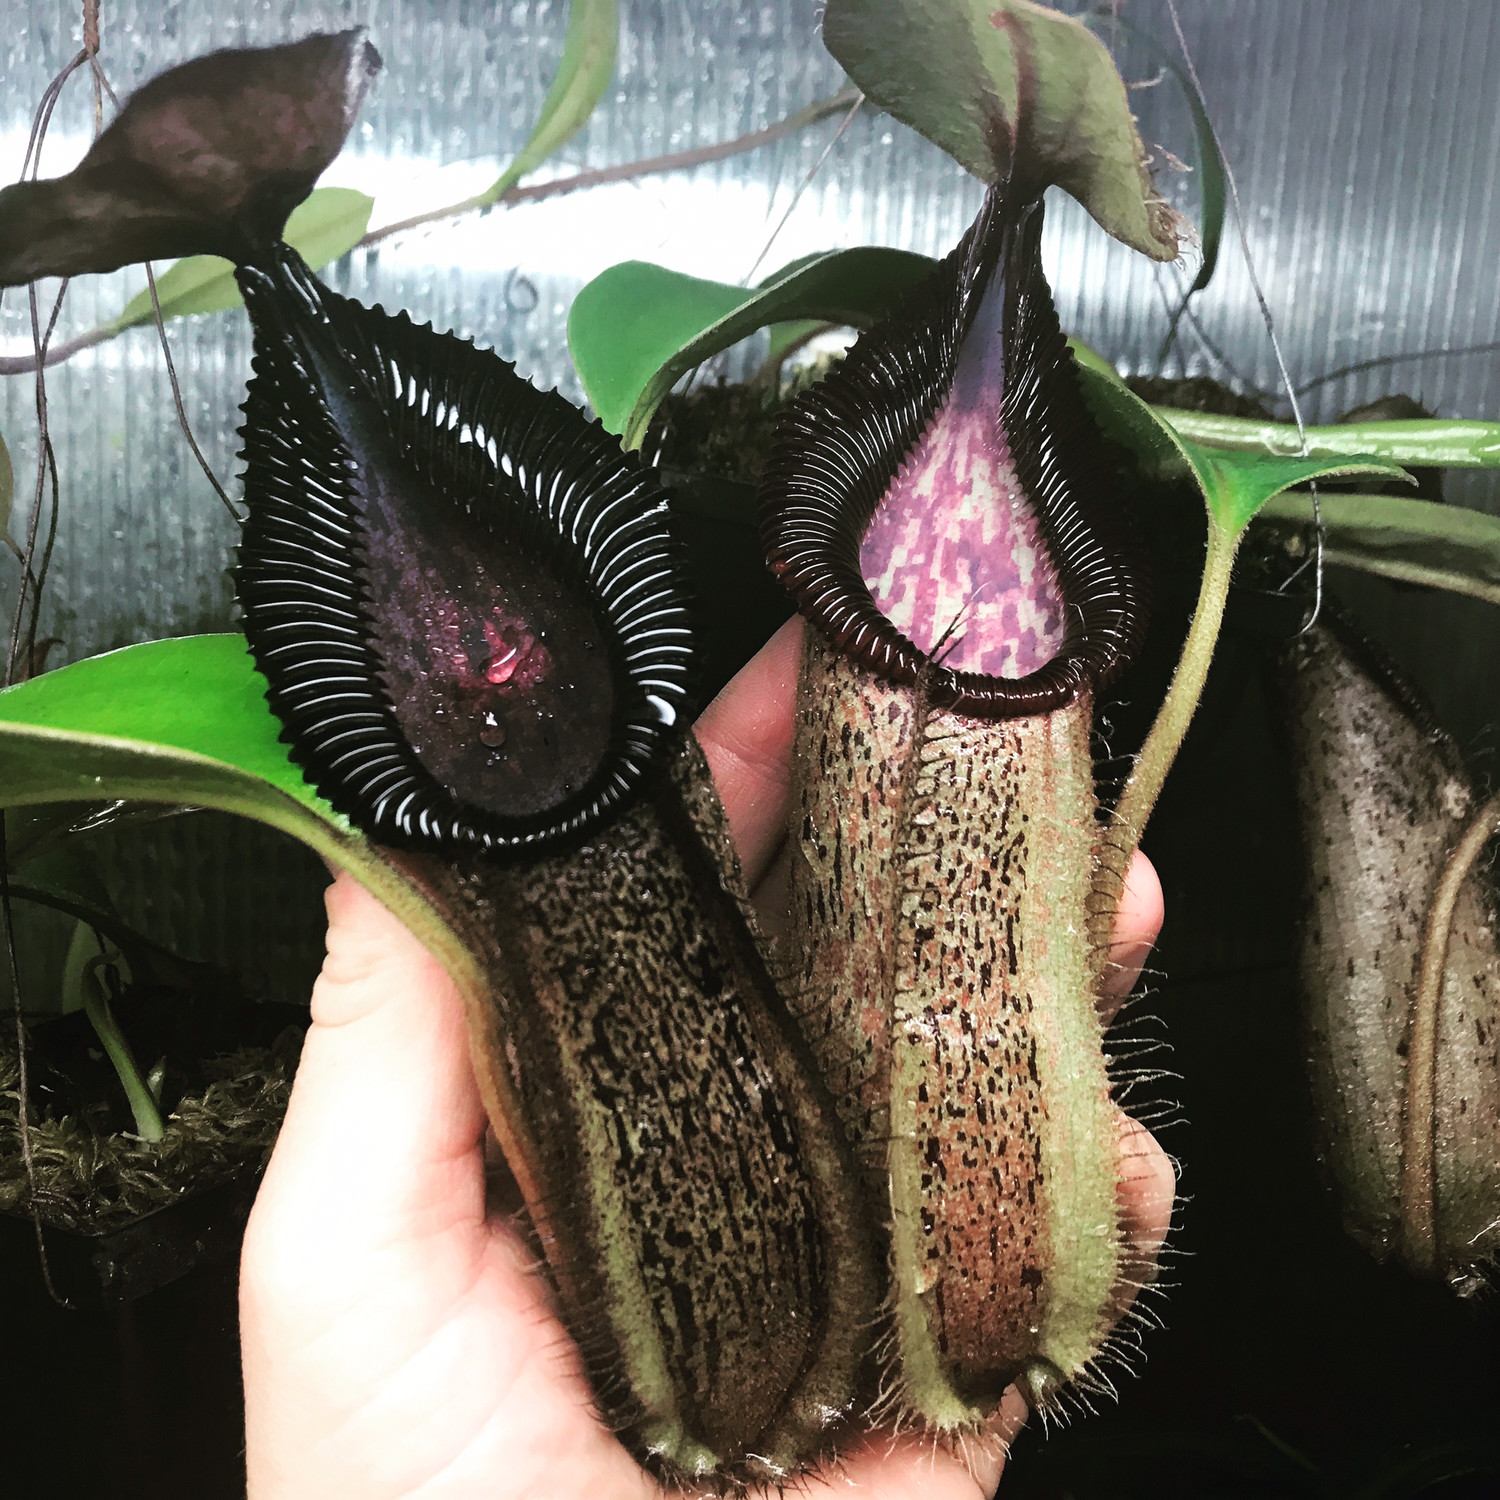 Nepenthes hamata x robcantleyi Huge Plants!